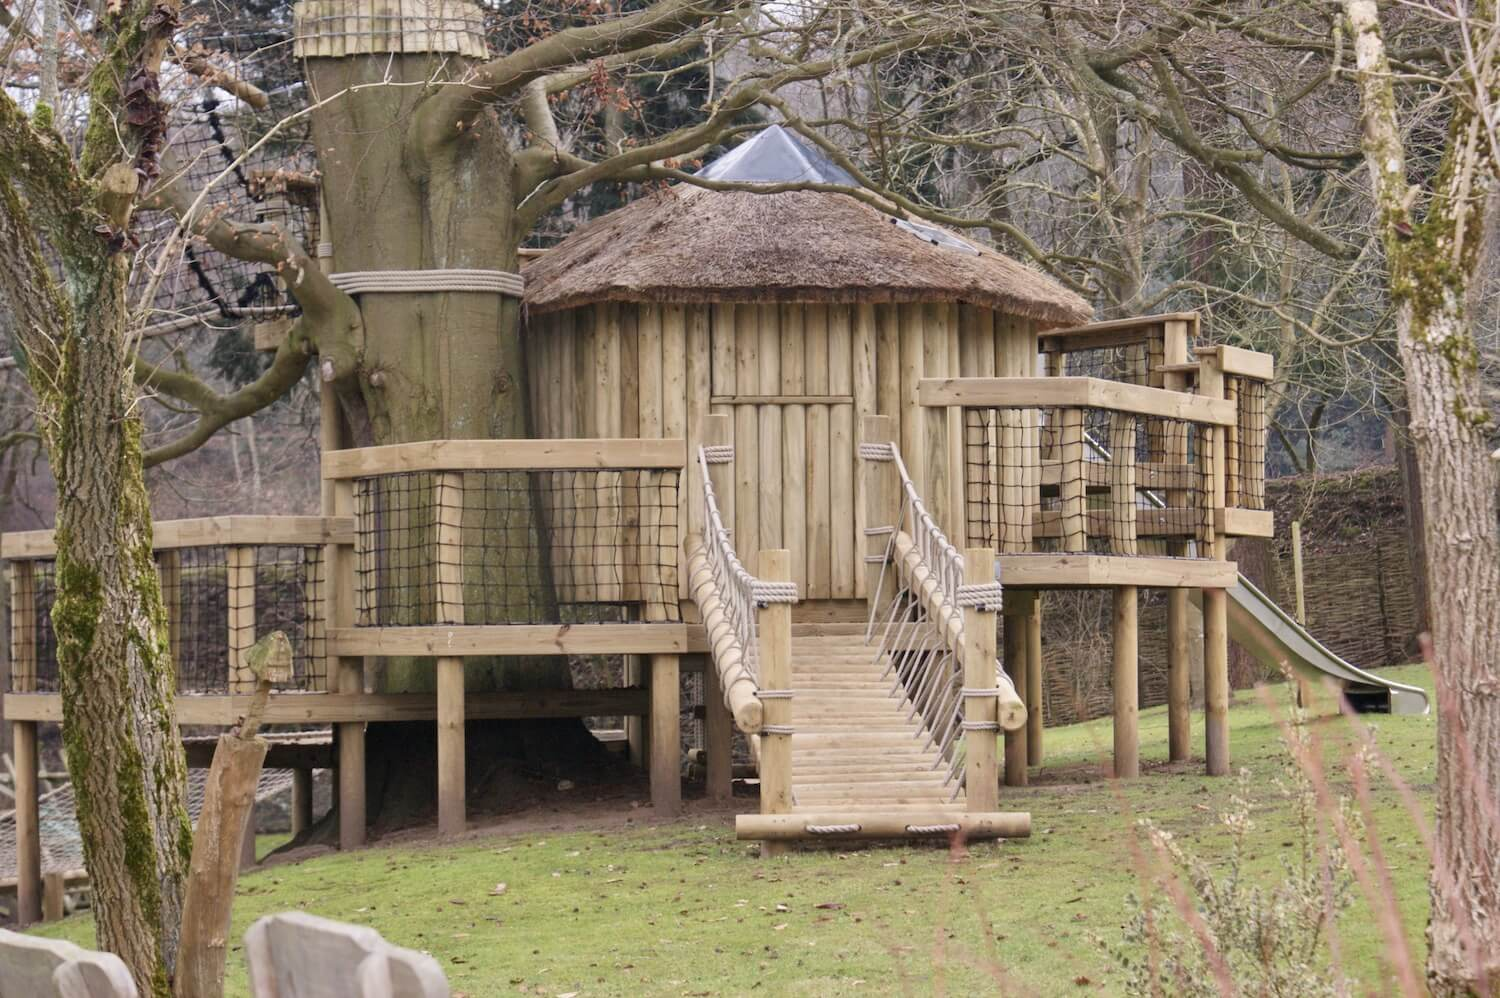 'Fun' tree houses